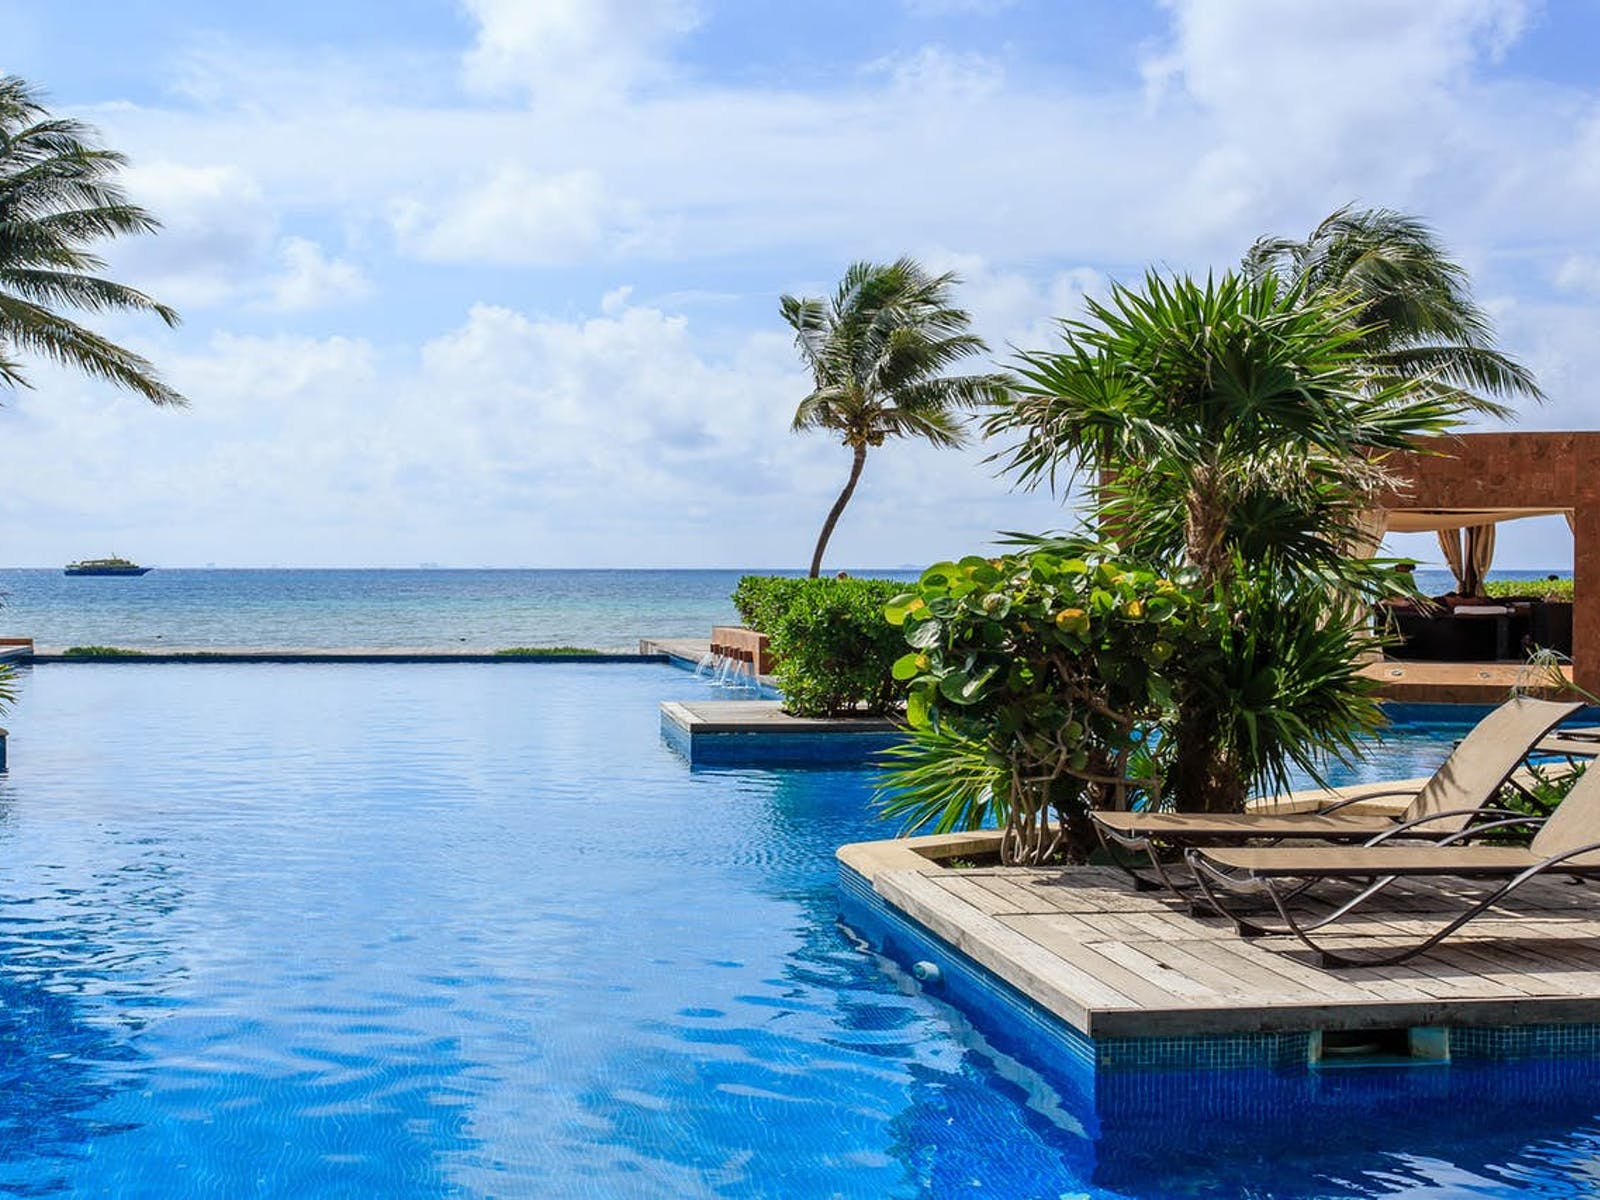 Playa del Carmen, Mexico vacation rental with oceanfront pool